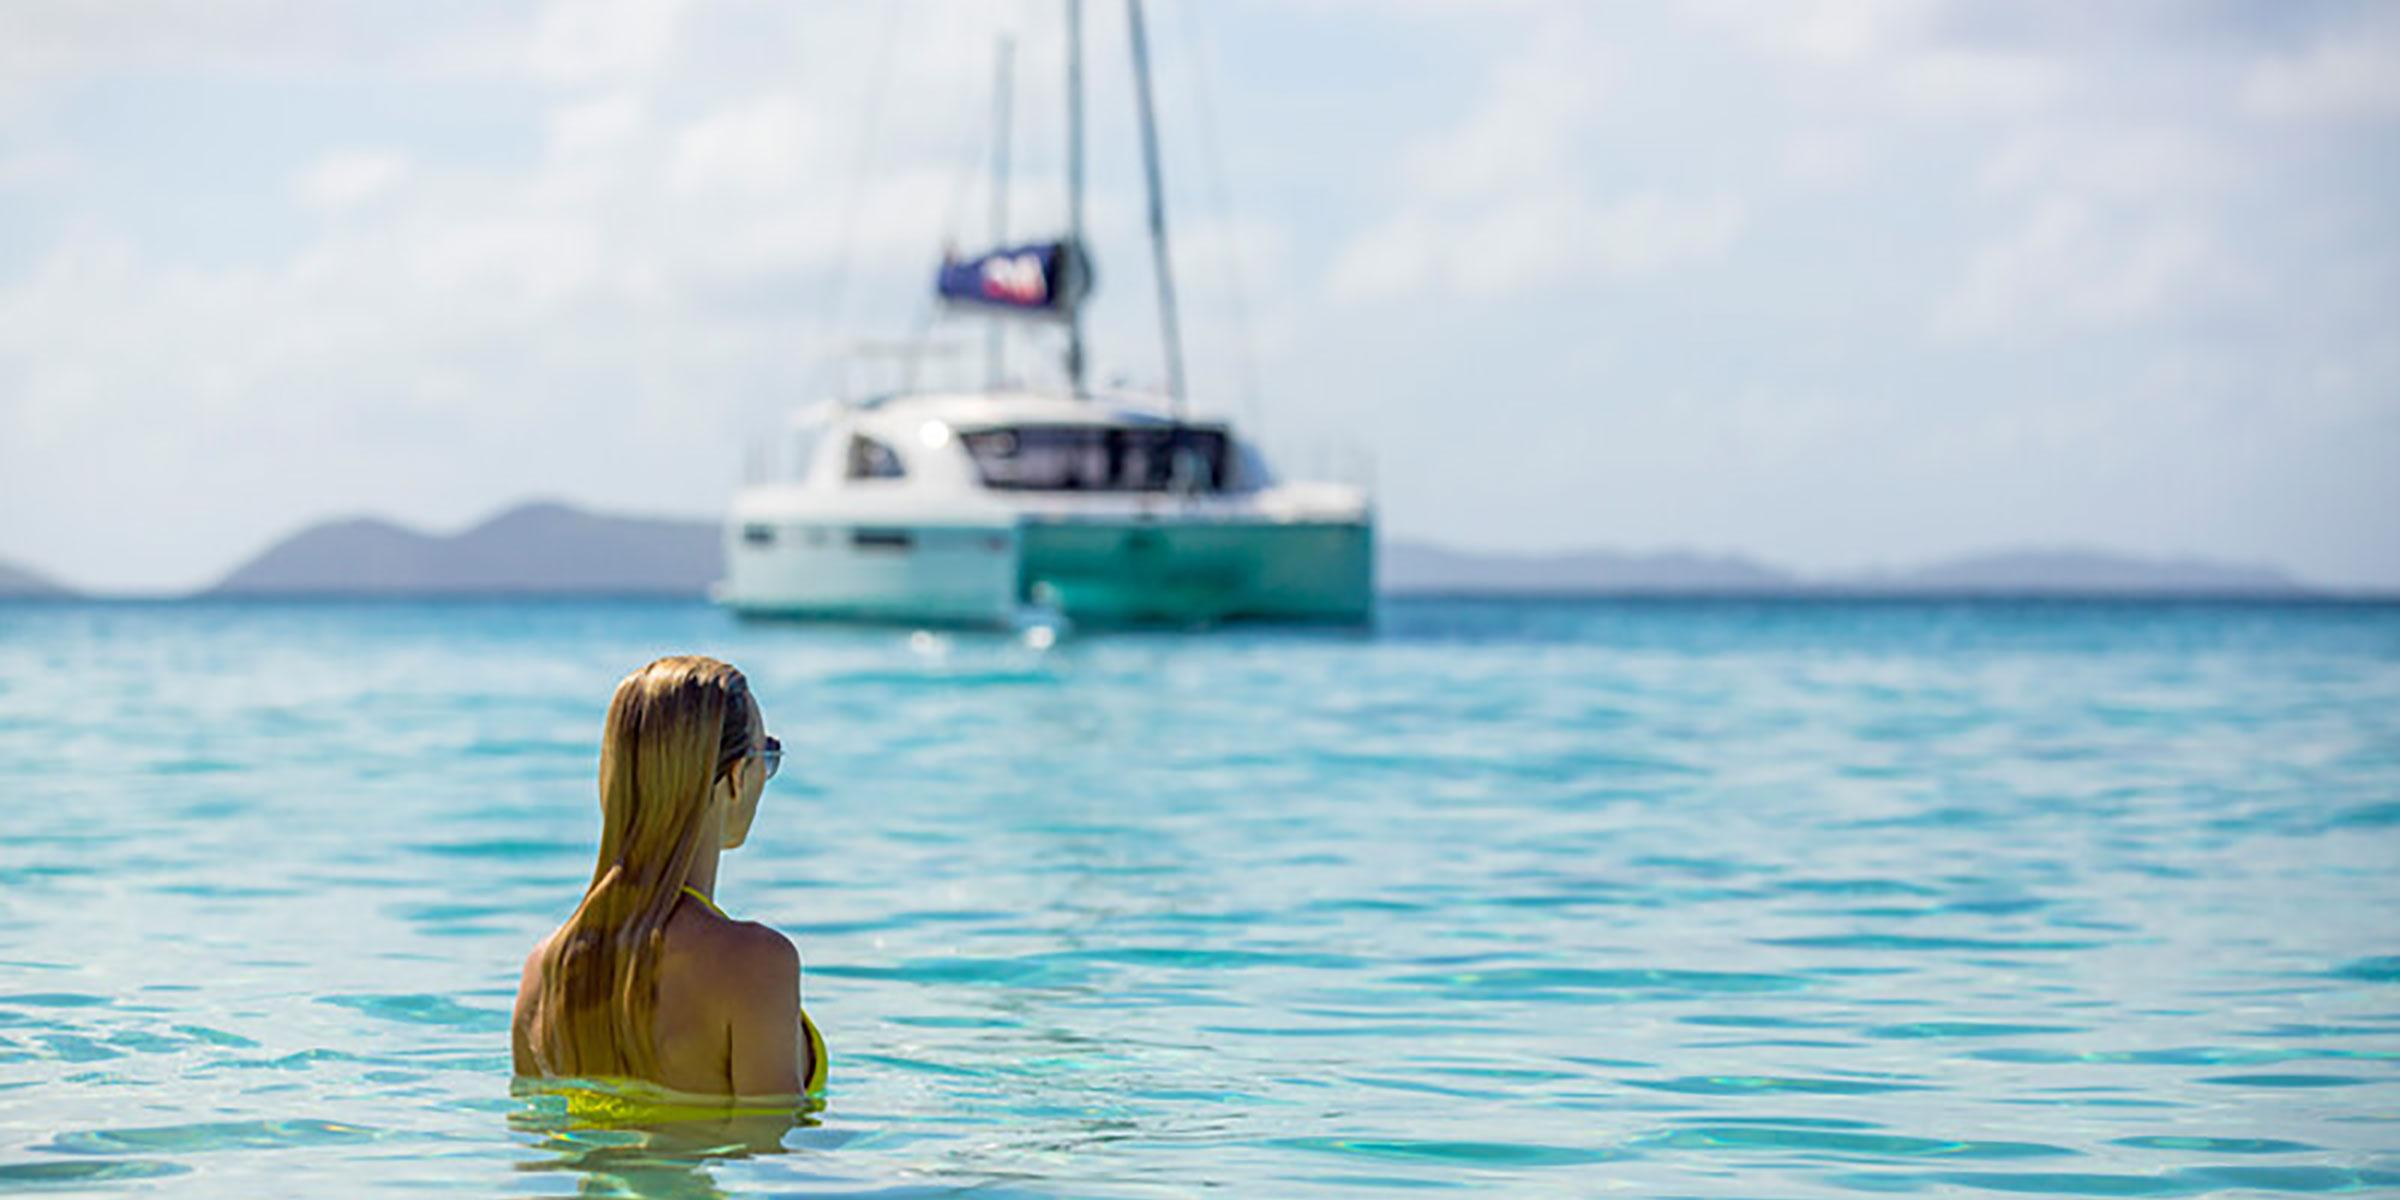 Woman swimming with sailing catamaran in view